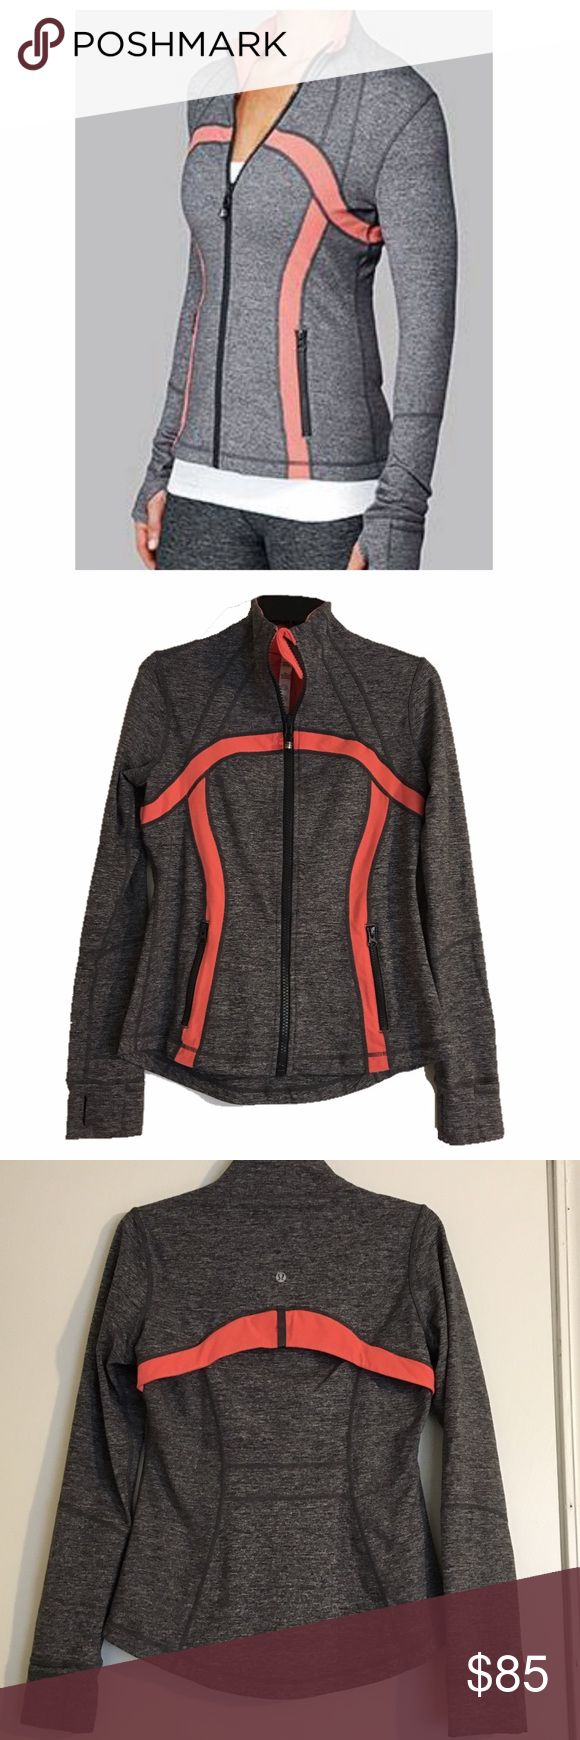 Lululemon define jacket Define jacket in static coal/persimmon. (Gray & coral). Excellent like new condition - only flaw is very minor pilling on lining at neck- shown in close up picture. Outside of jacket in perfect condition. Two zipper pockets, thumbholes, cuffins. 👍bundles lululemon athletica Jackets & Coats